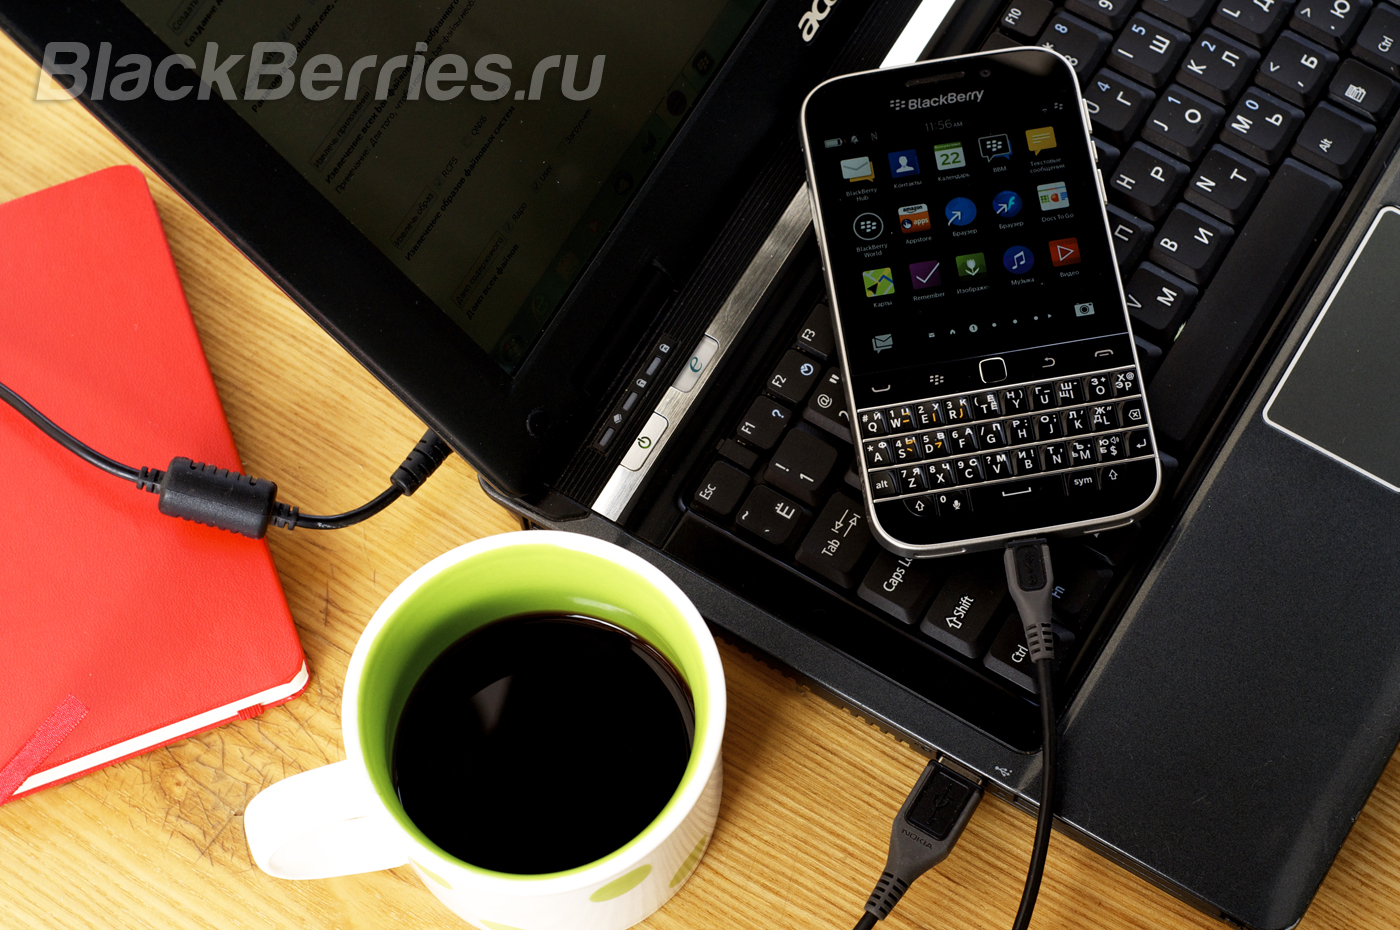 BlackBerry-Classic-Autoloaders